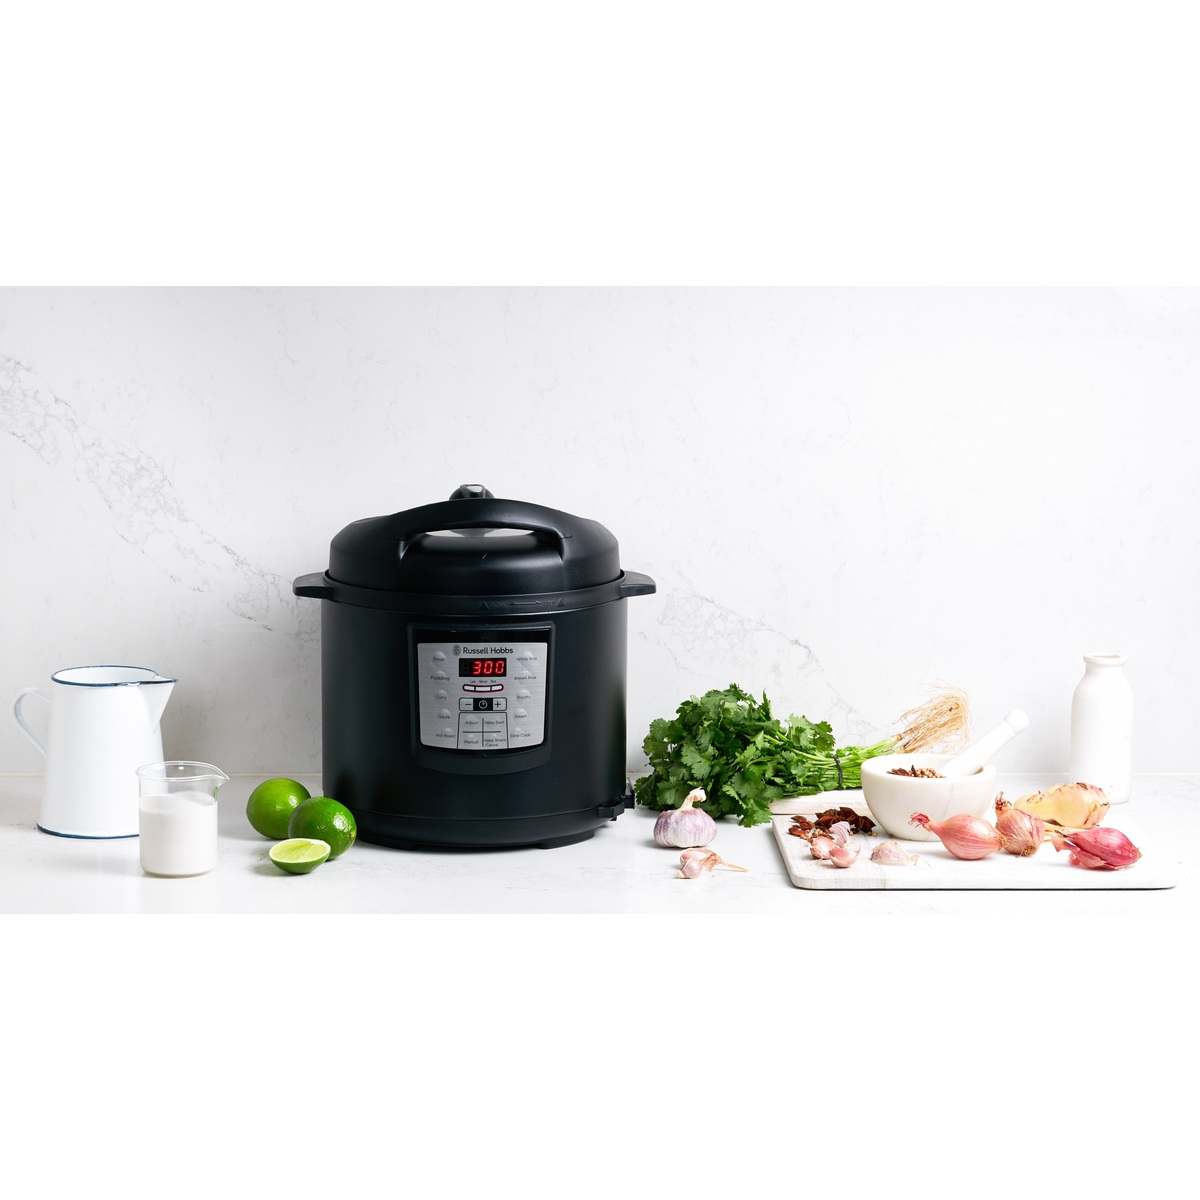 Big W Pressure Cooker Russell Hobbs Express Chef Digital Multi Cooker